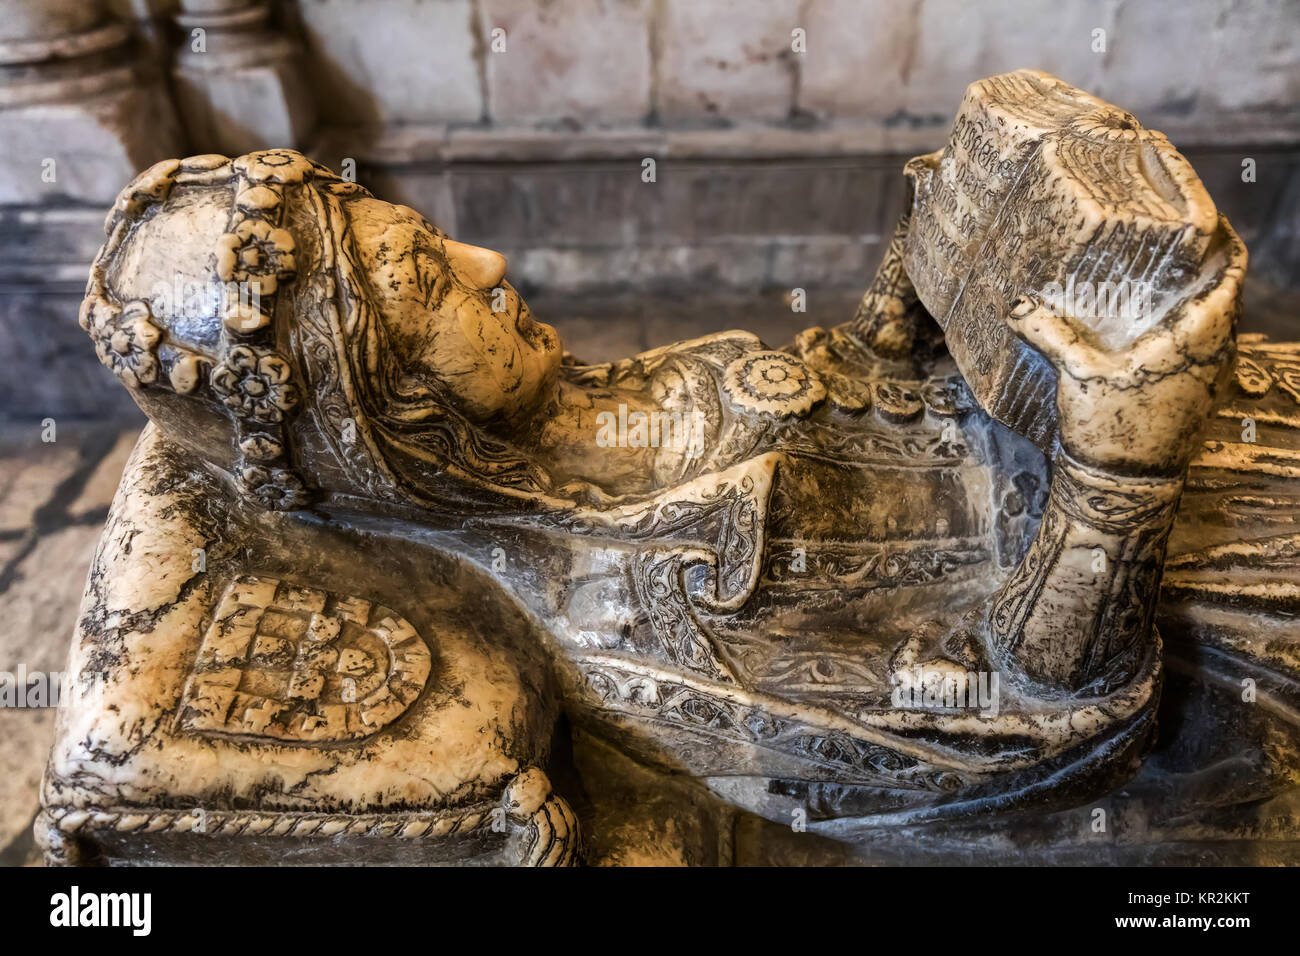 Lisbon, Portugal, August 7, 2017: 14th century tomb of Maria de Vilalobos, wife of a famous knight Lopo Fernandes - Stock Image